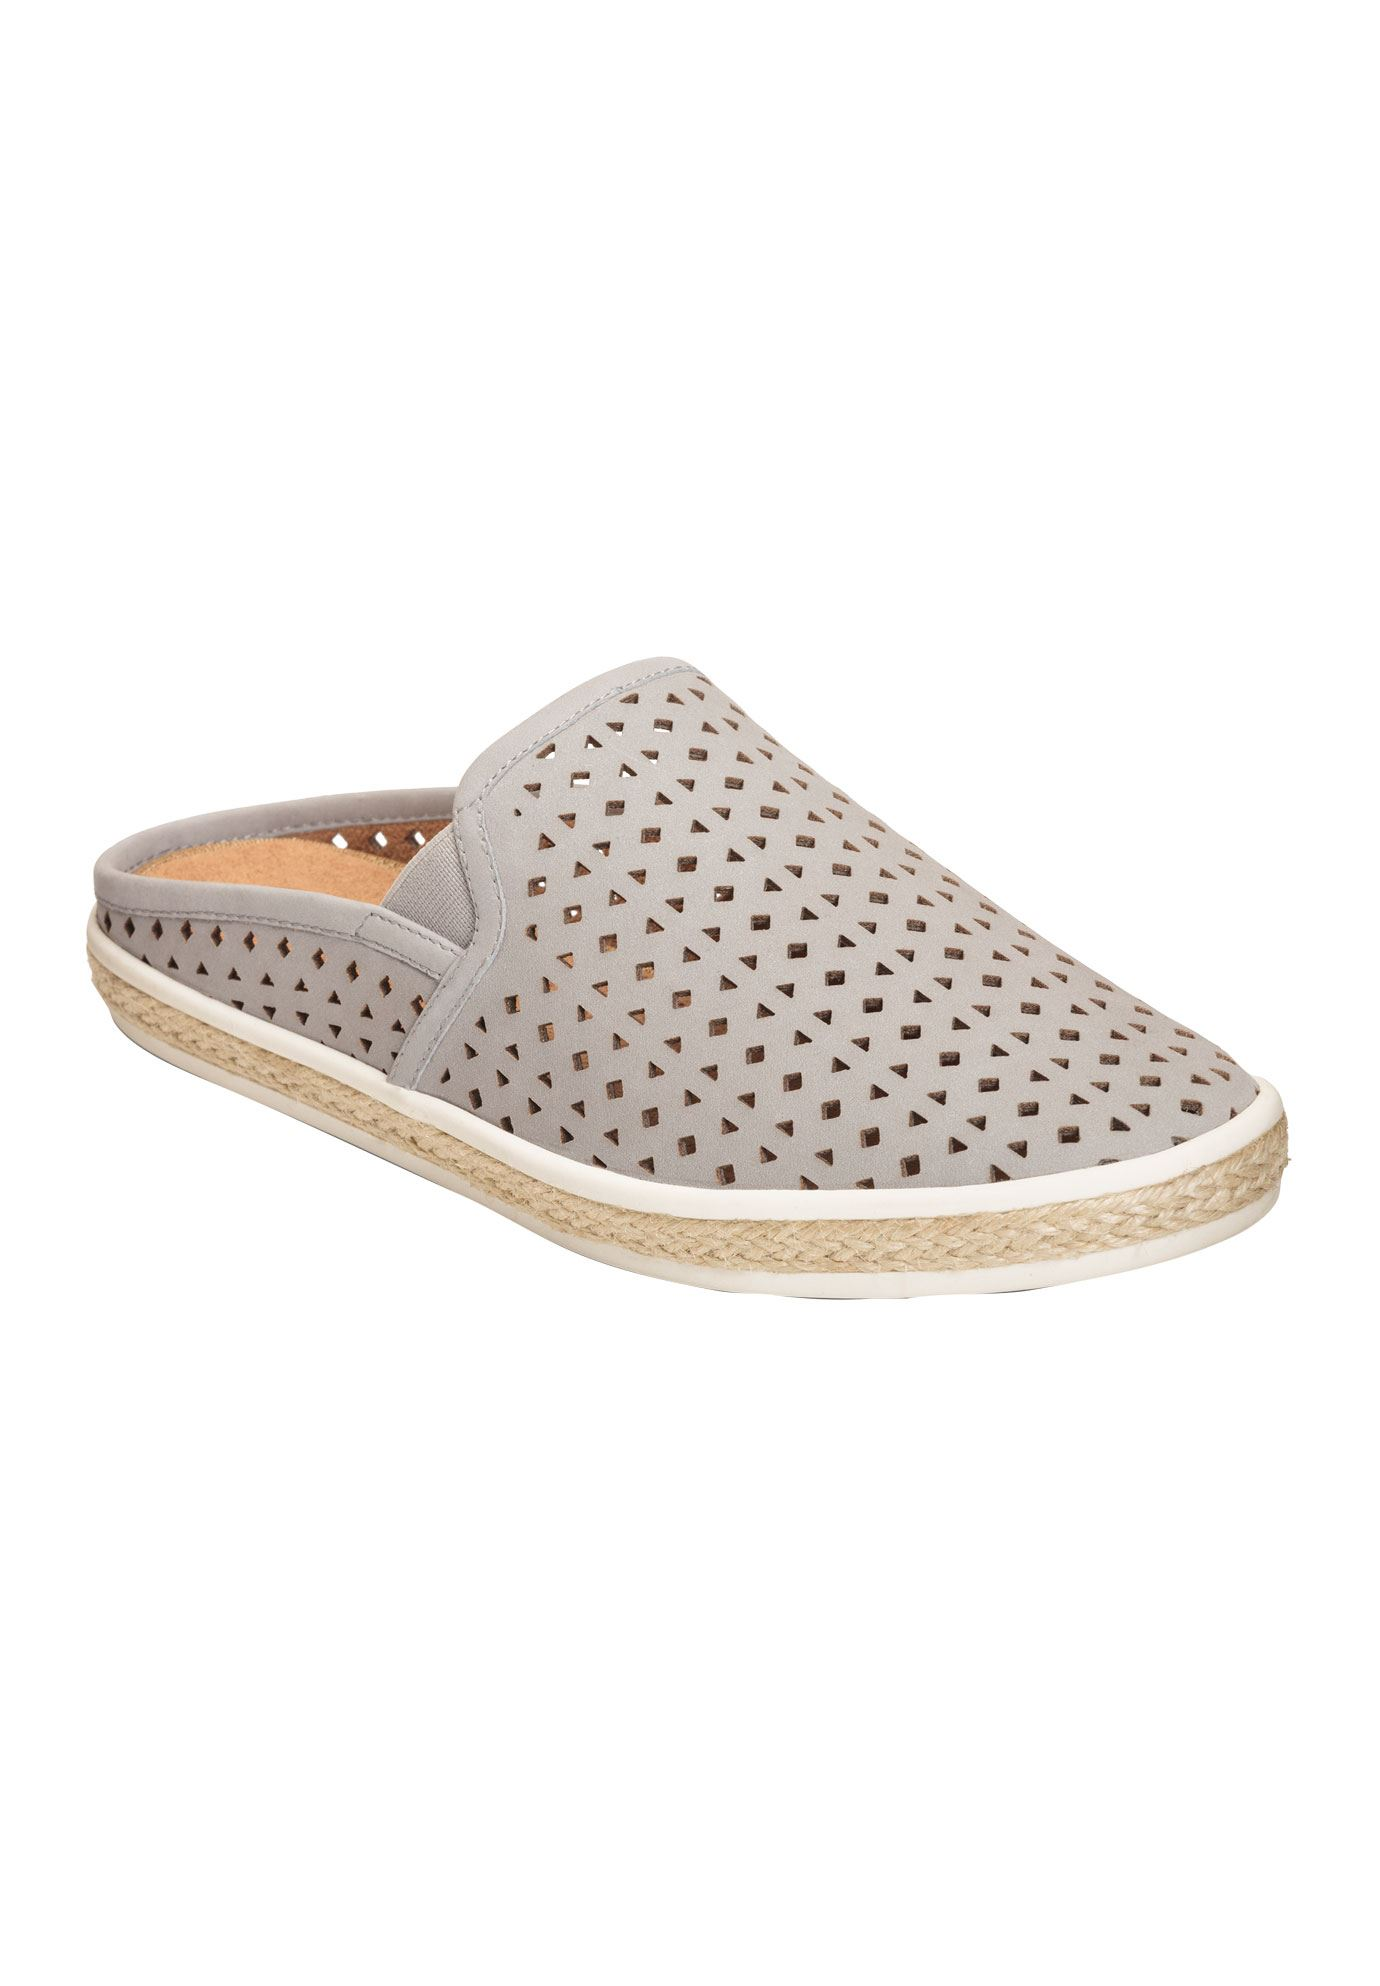 Fun For All Slip-On by Aerosoles®,